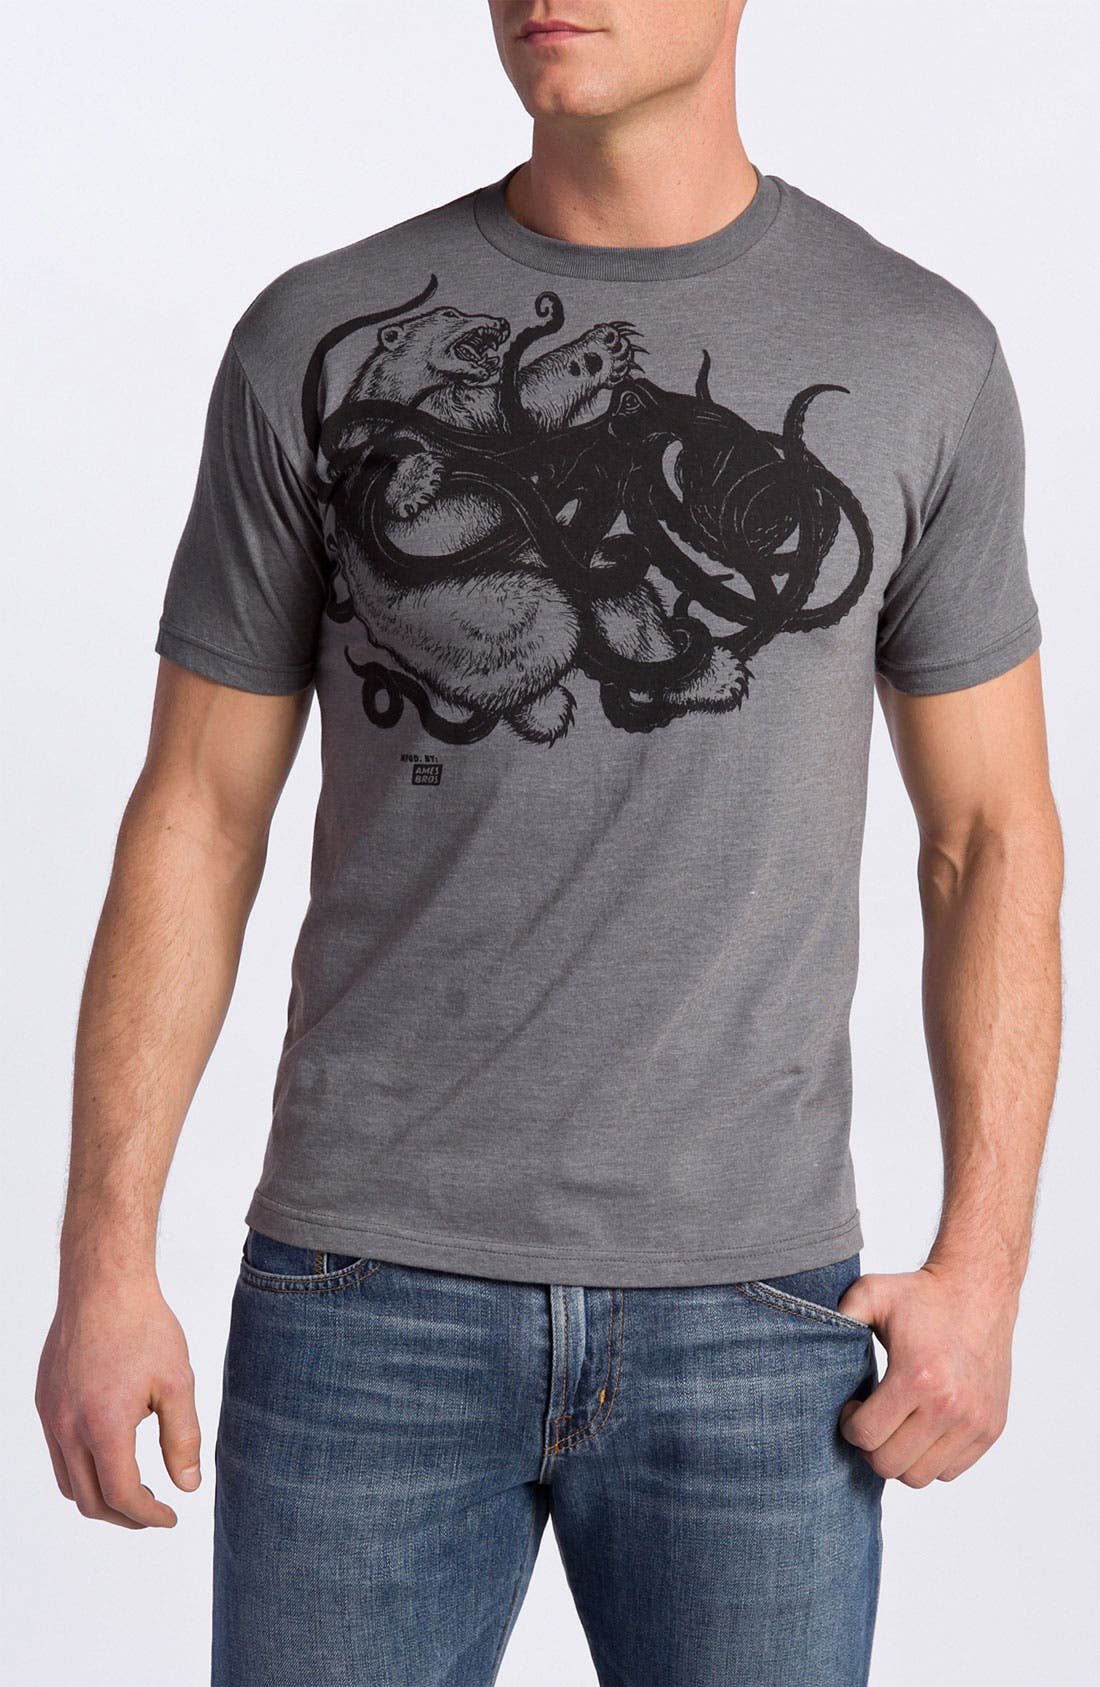 Alternate Image 1 Selected - Ames Bros 'Polar Bear vs. Octopus' Trim Fit Crewneck T-Shirt (Men)